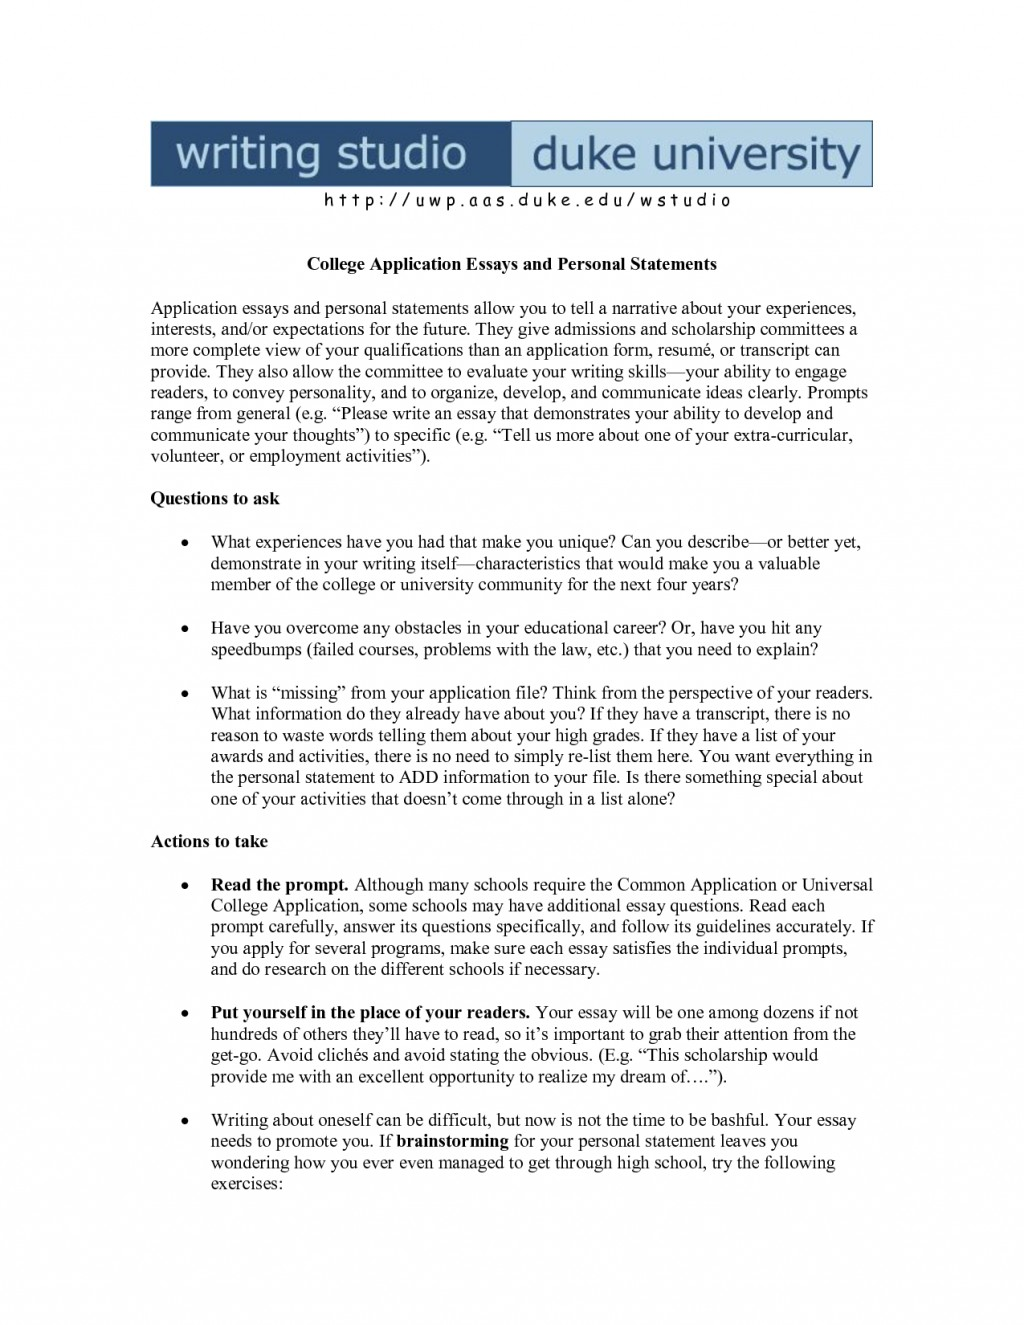 003 Uc Application Essay Fuvq4 College Questions Common App Staggering 2020 2017-18 Large